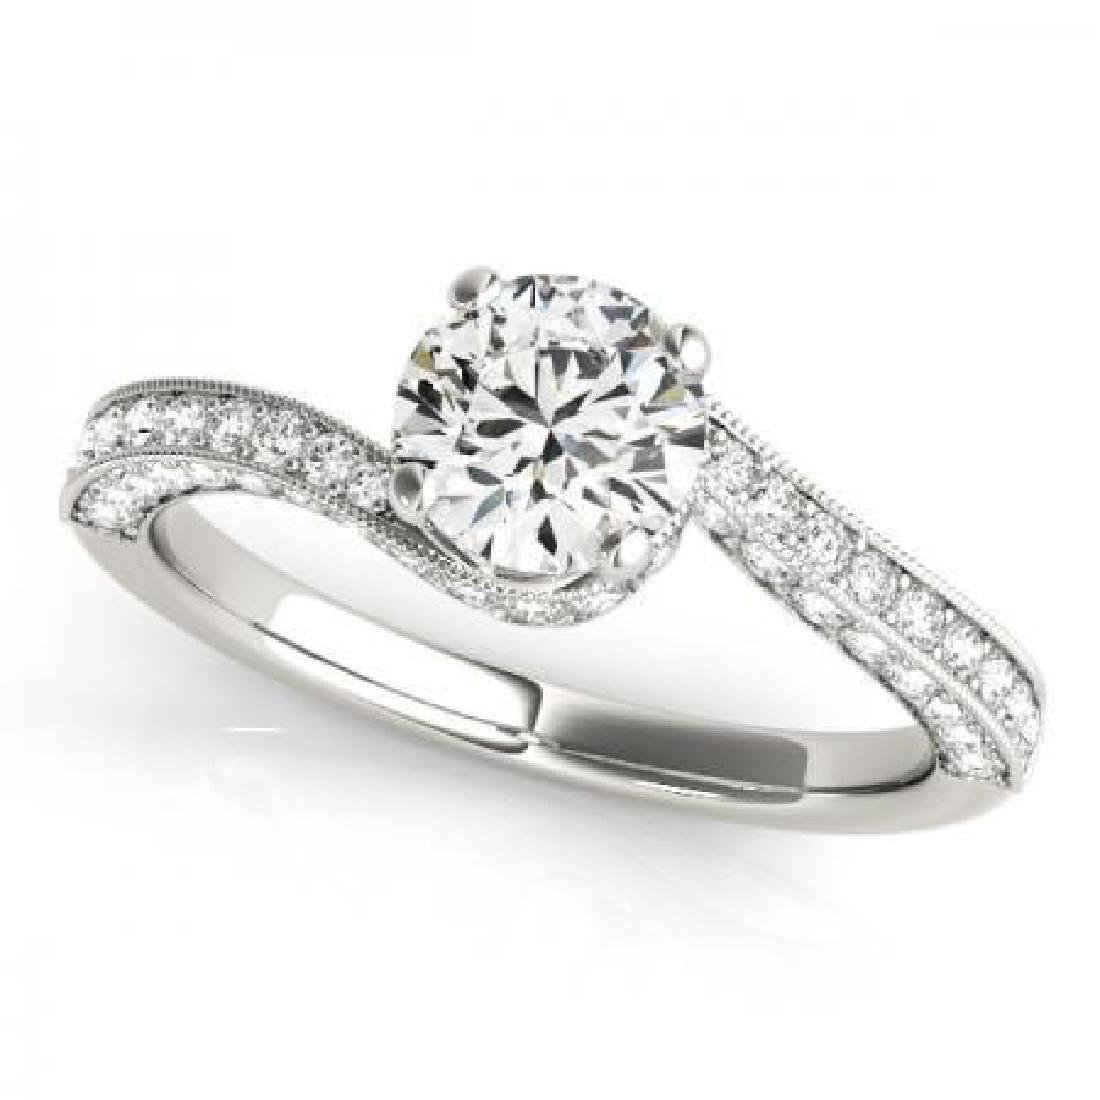 CERTIFIED 18KT WHITE GOLD 1.05 CT G-H/VS-SI1 DIAMOND EN